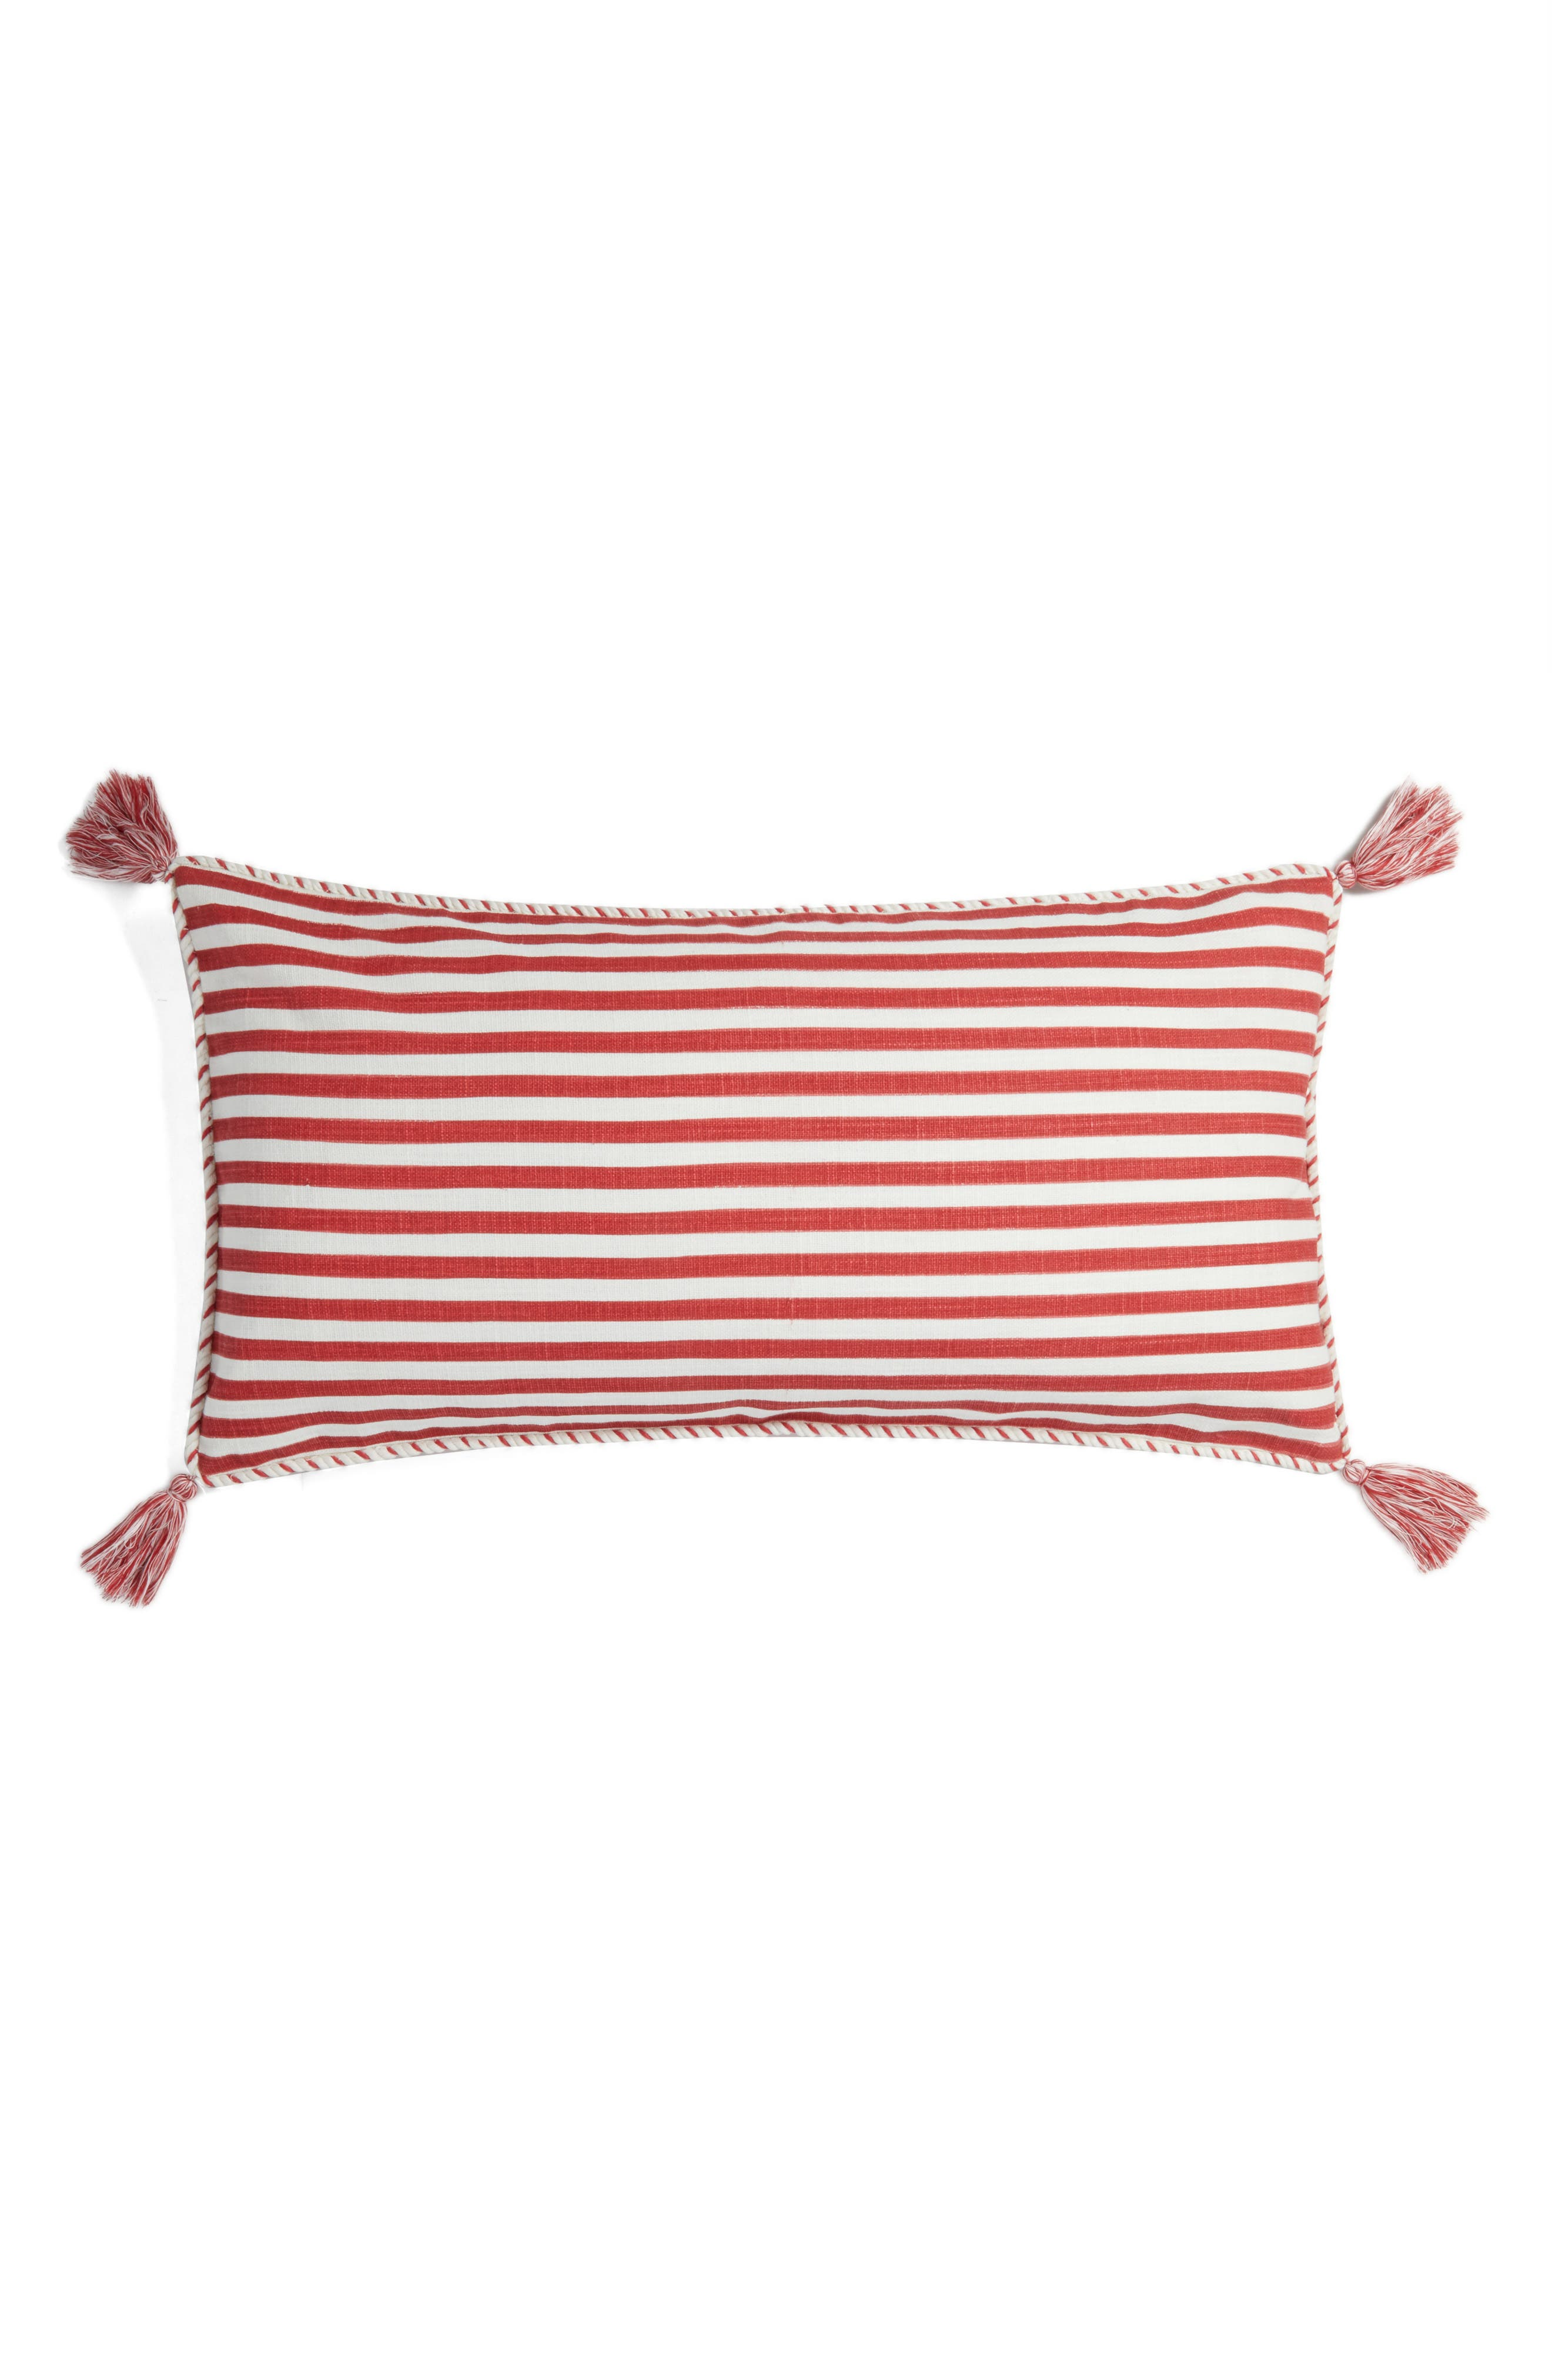 Stripe Tassel Accent Pillow,                         Main,                         color, 950